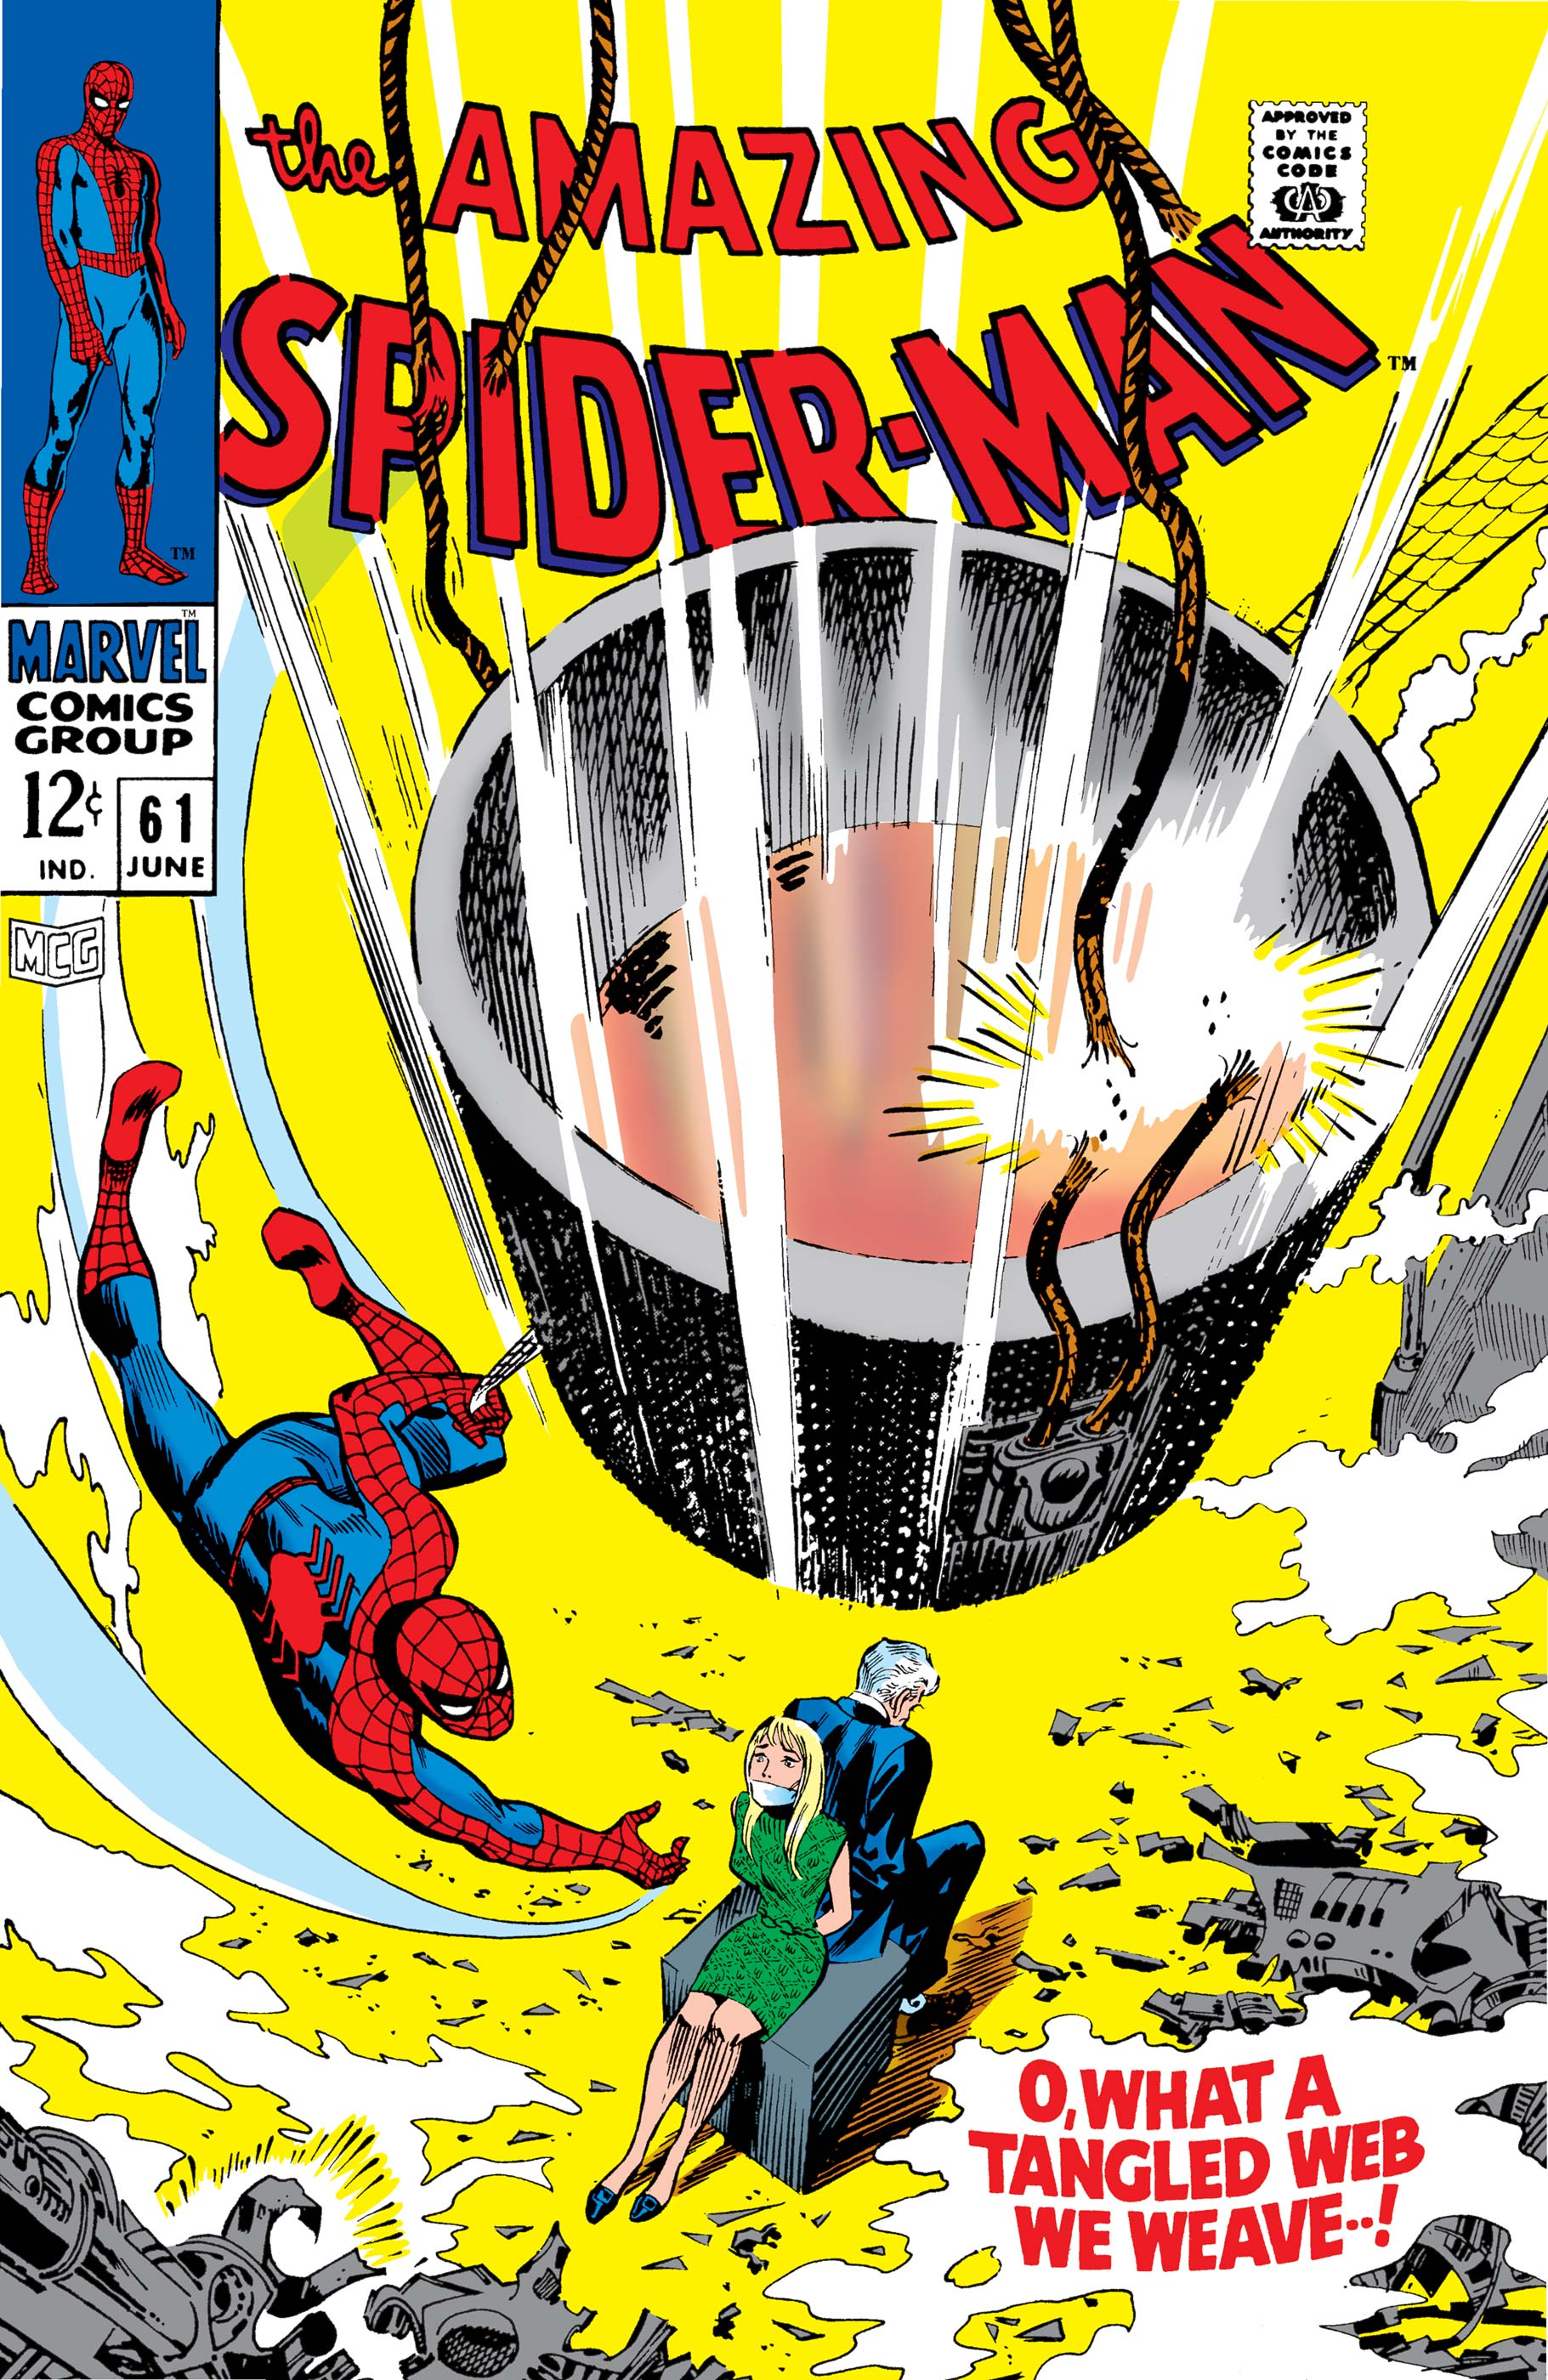 The Amazing Spider-Man (1963) #61